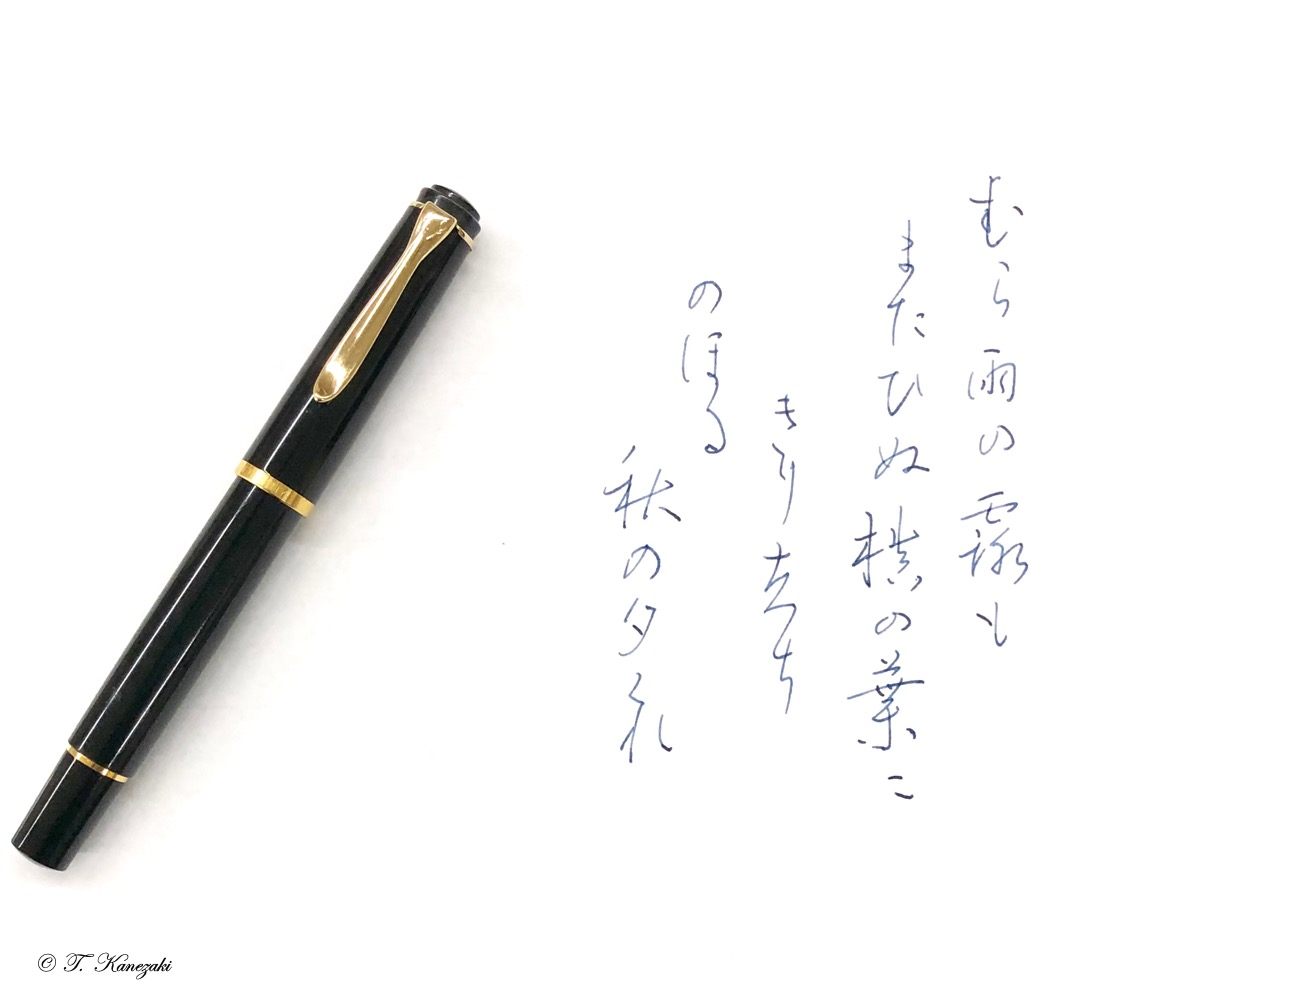 http://kanezaki.net/blog/handwriting004.jpg